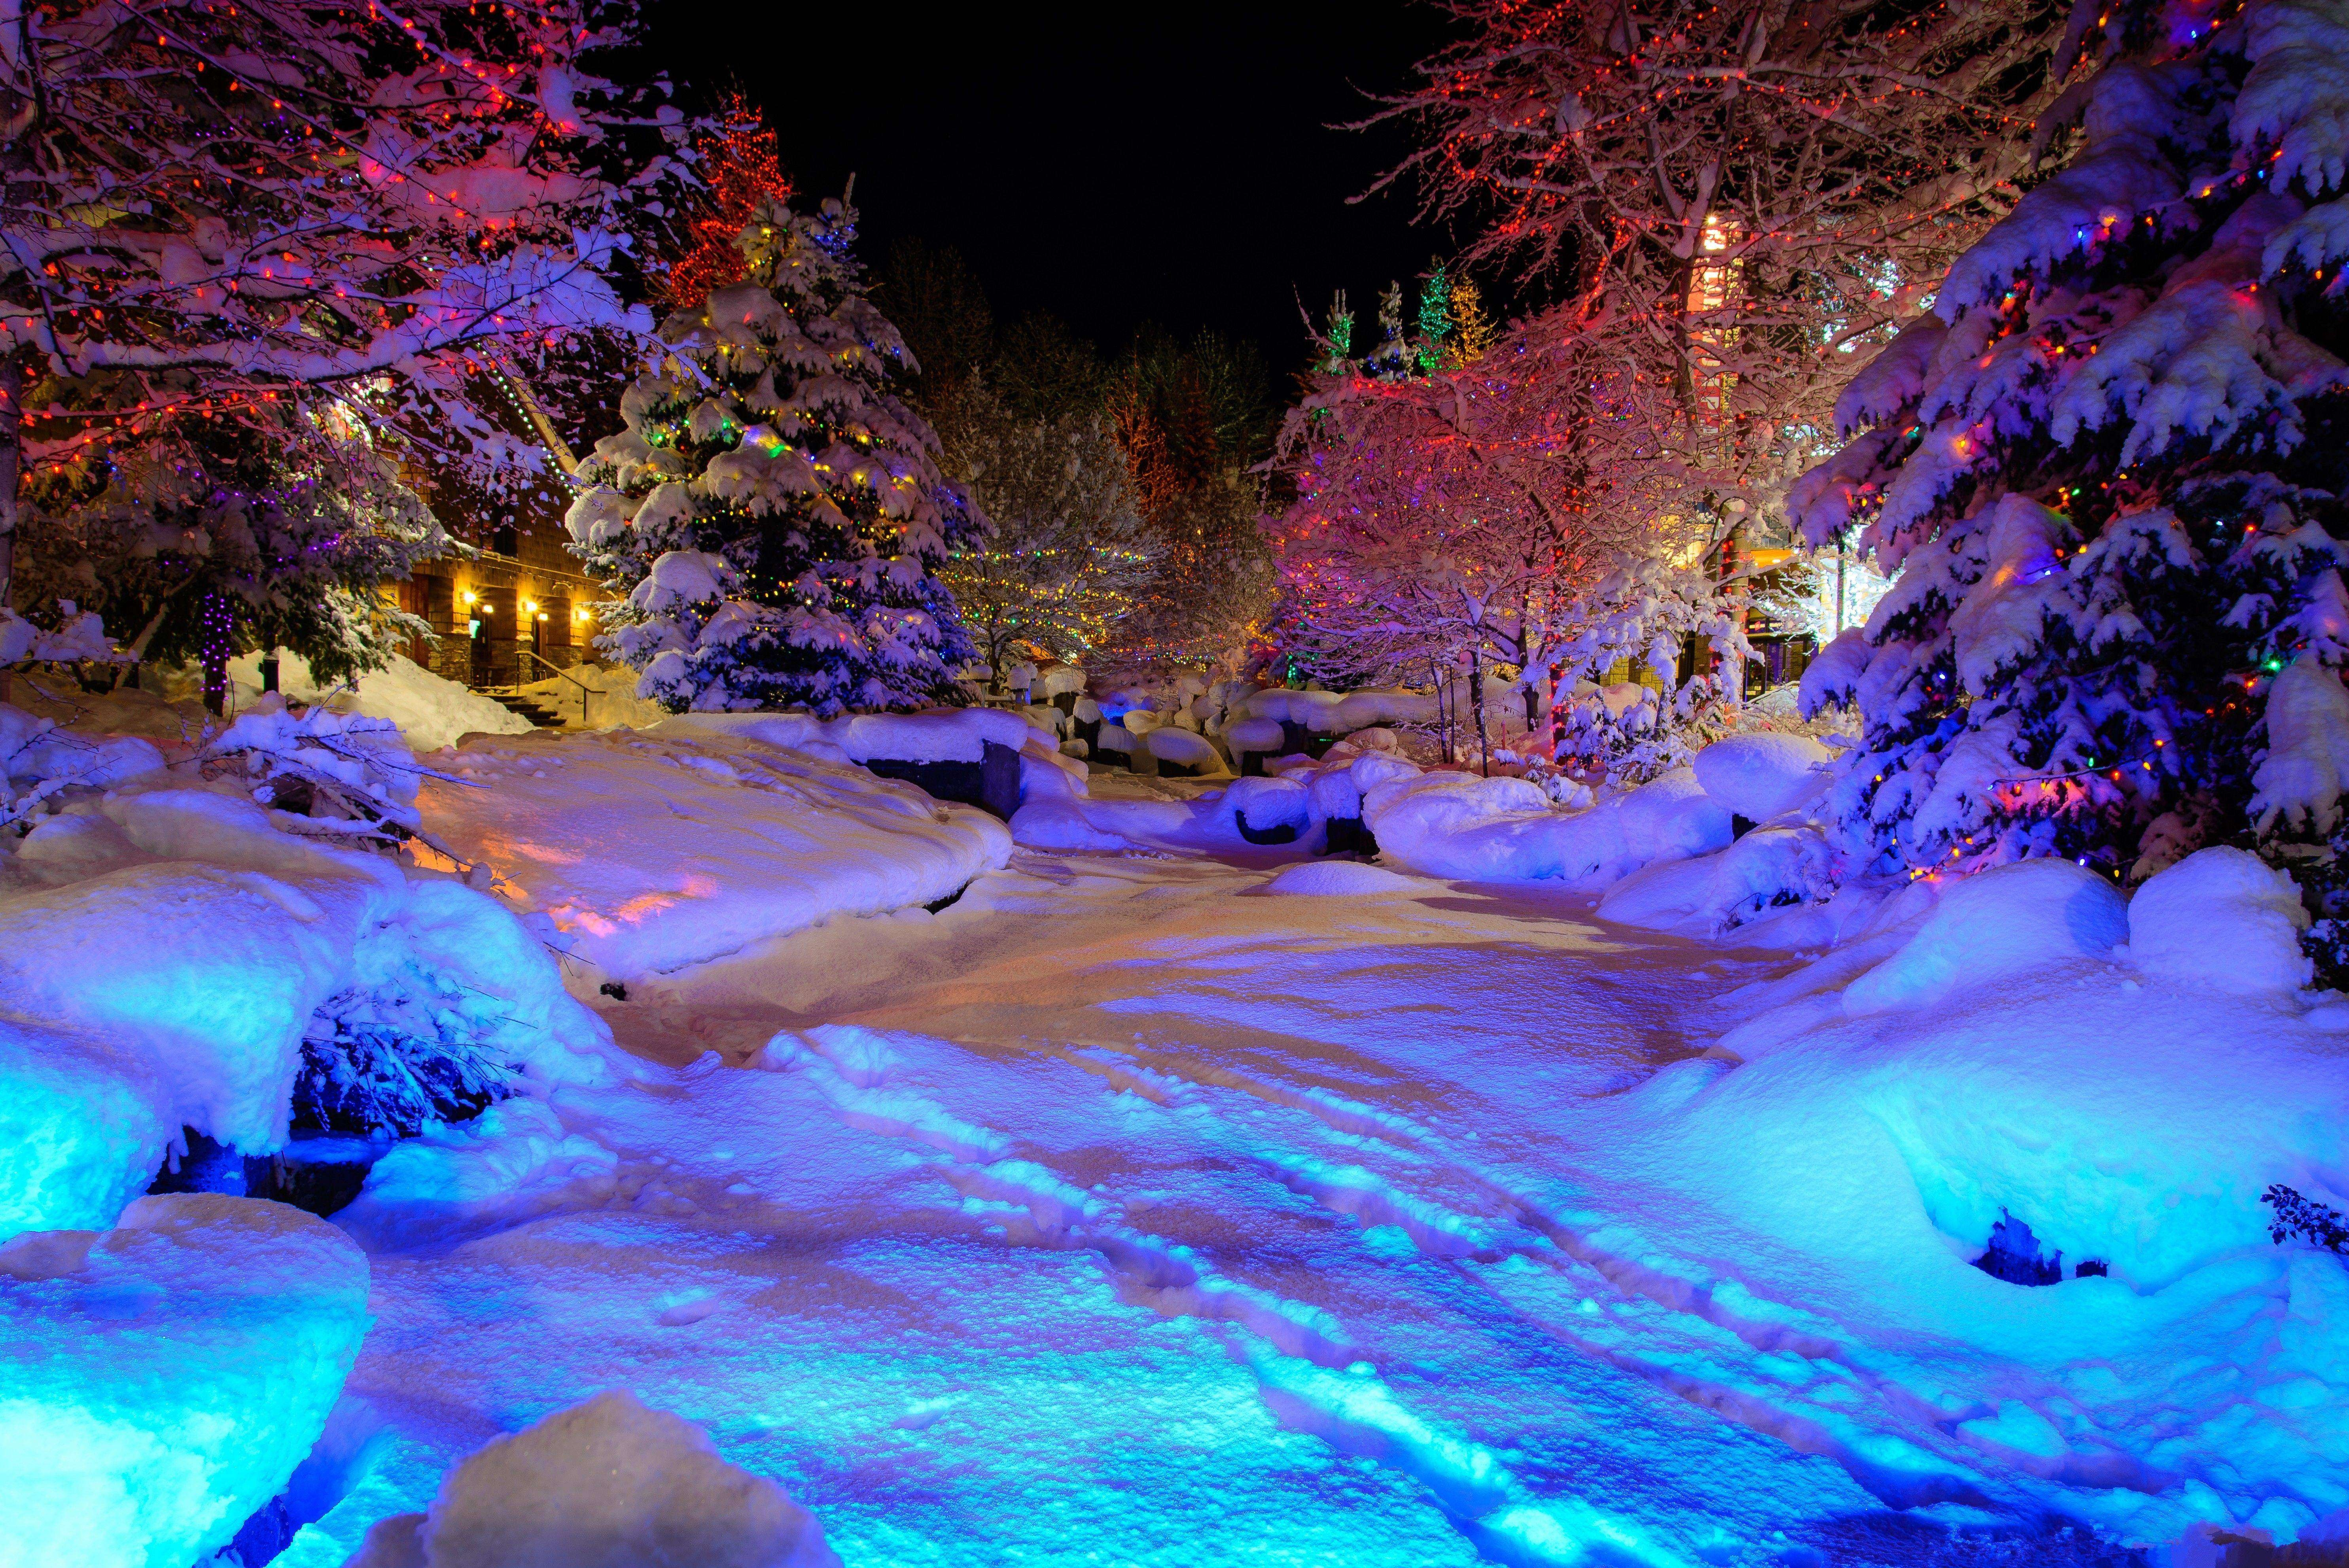 Hd magic winter wallpaper download free - Photography Winter Whistler Village Evening Wallpaper Download